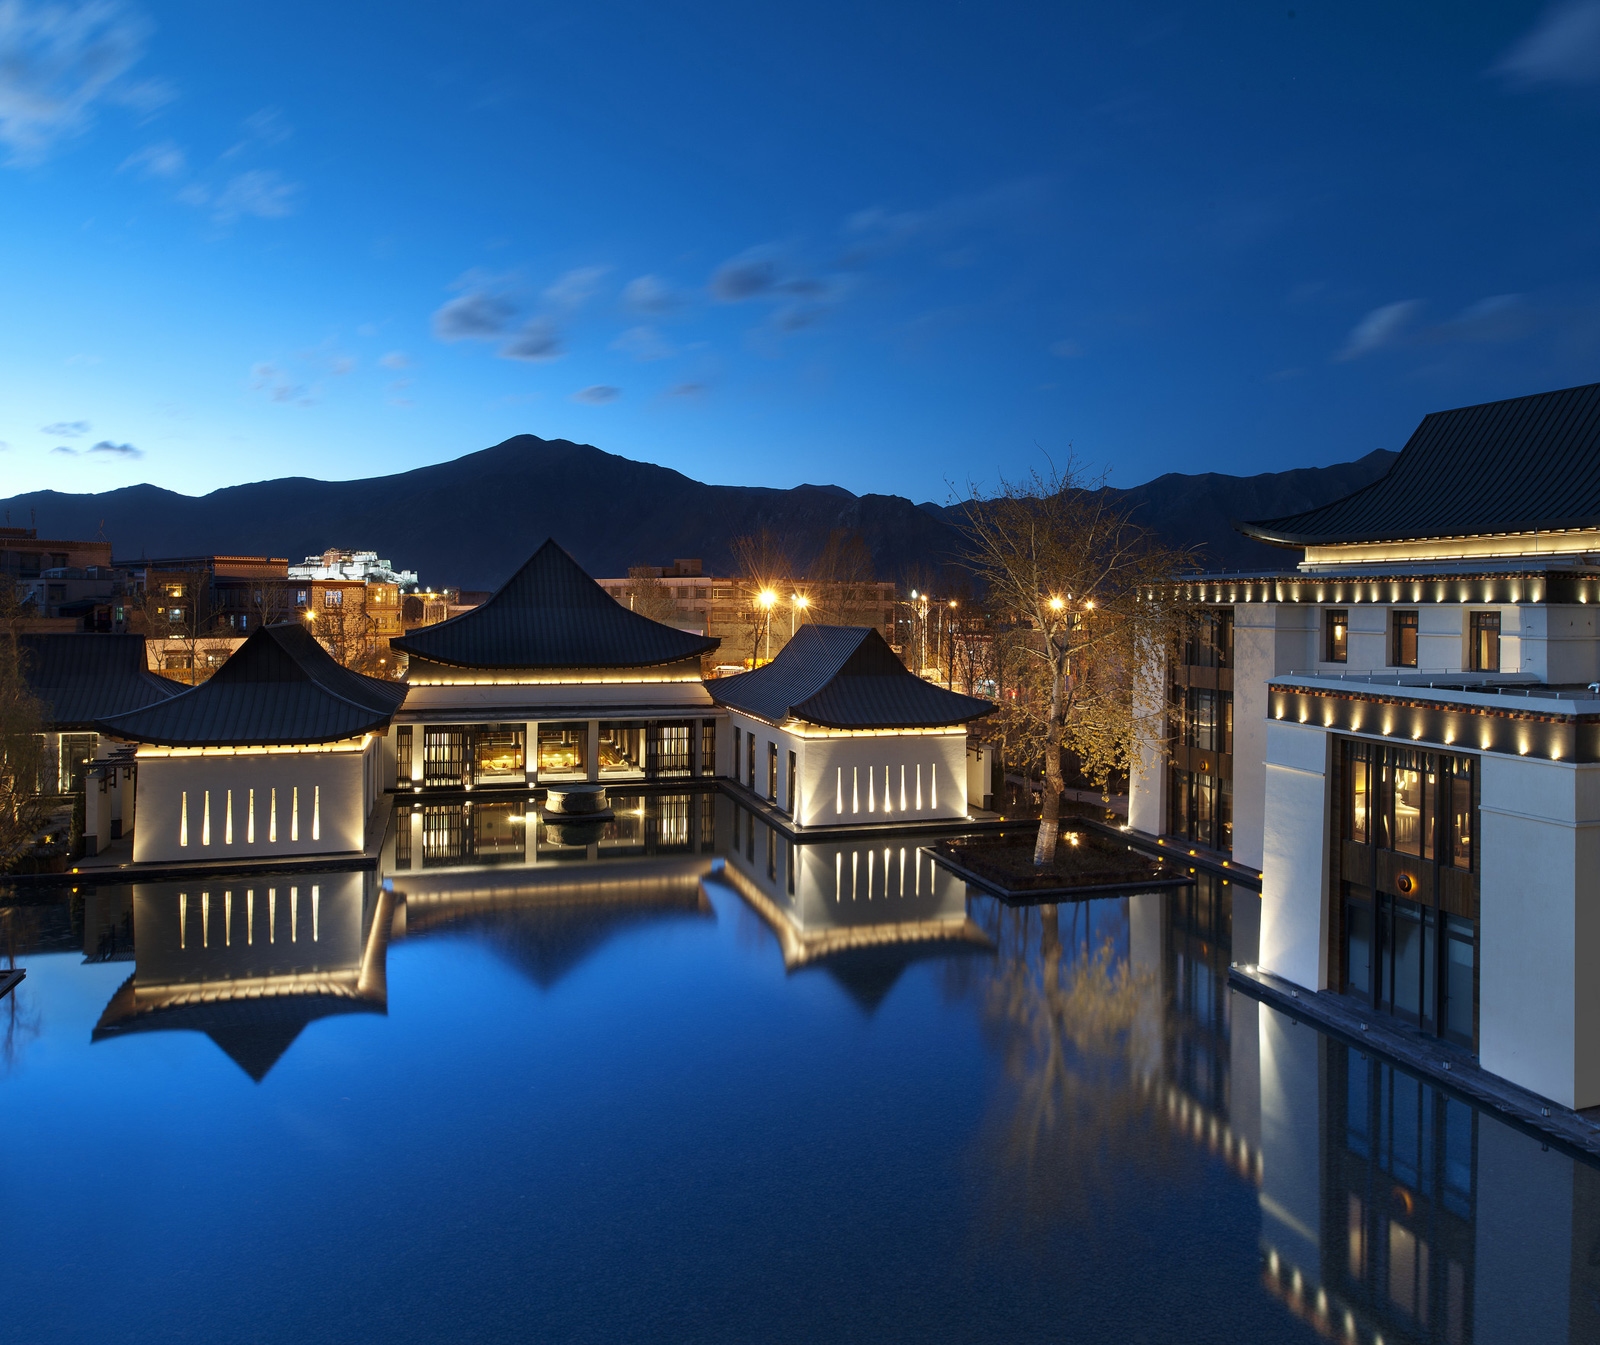 St regis lhasa tibet 39 s first five star hotel extravaganzi for Top luxury hotels